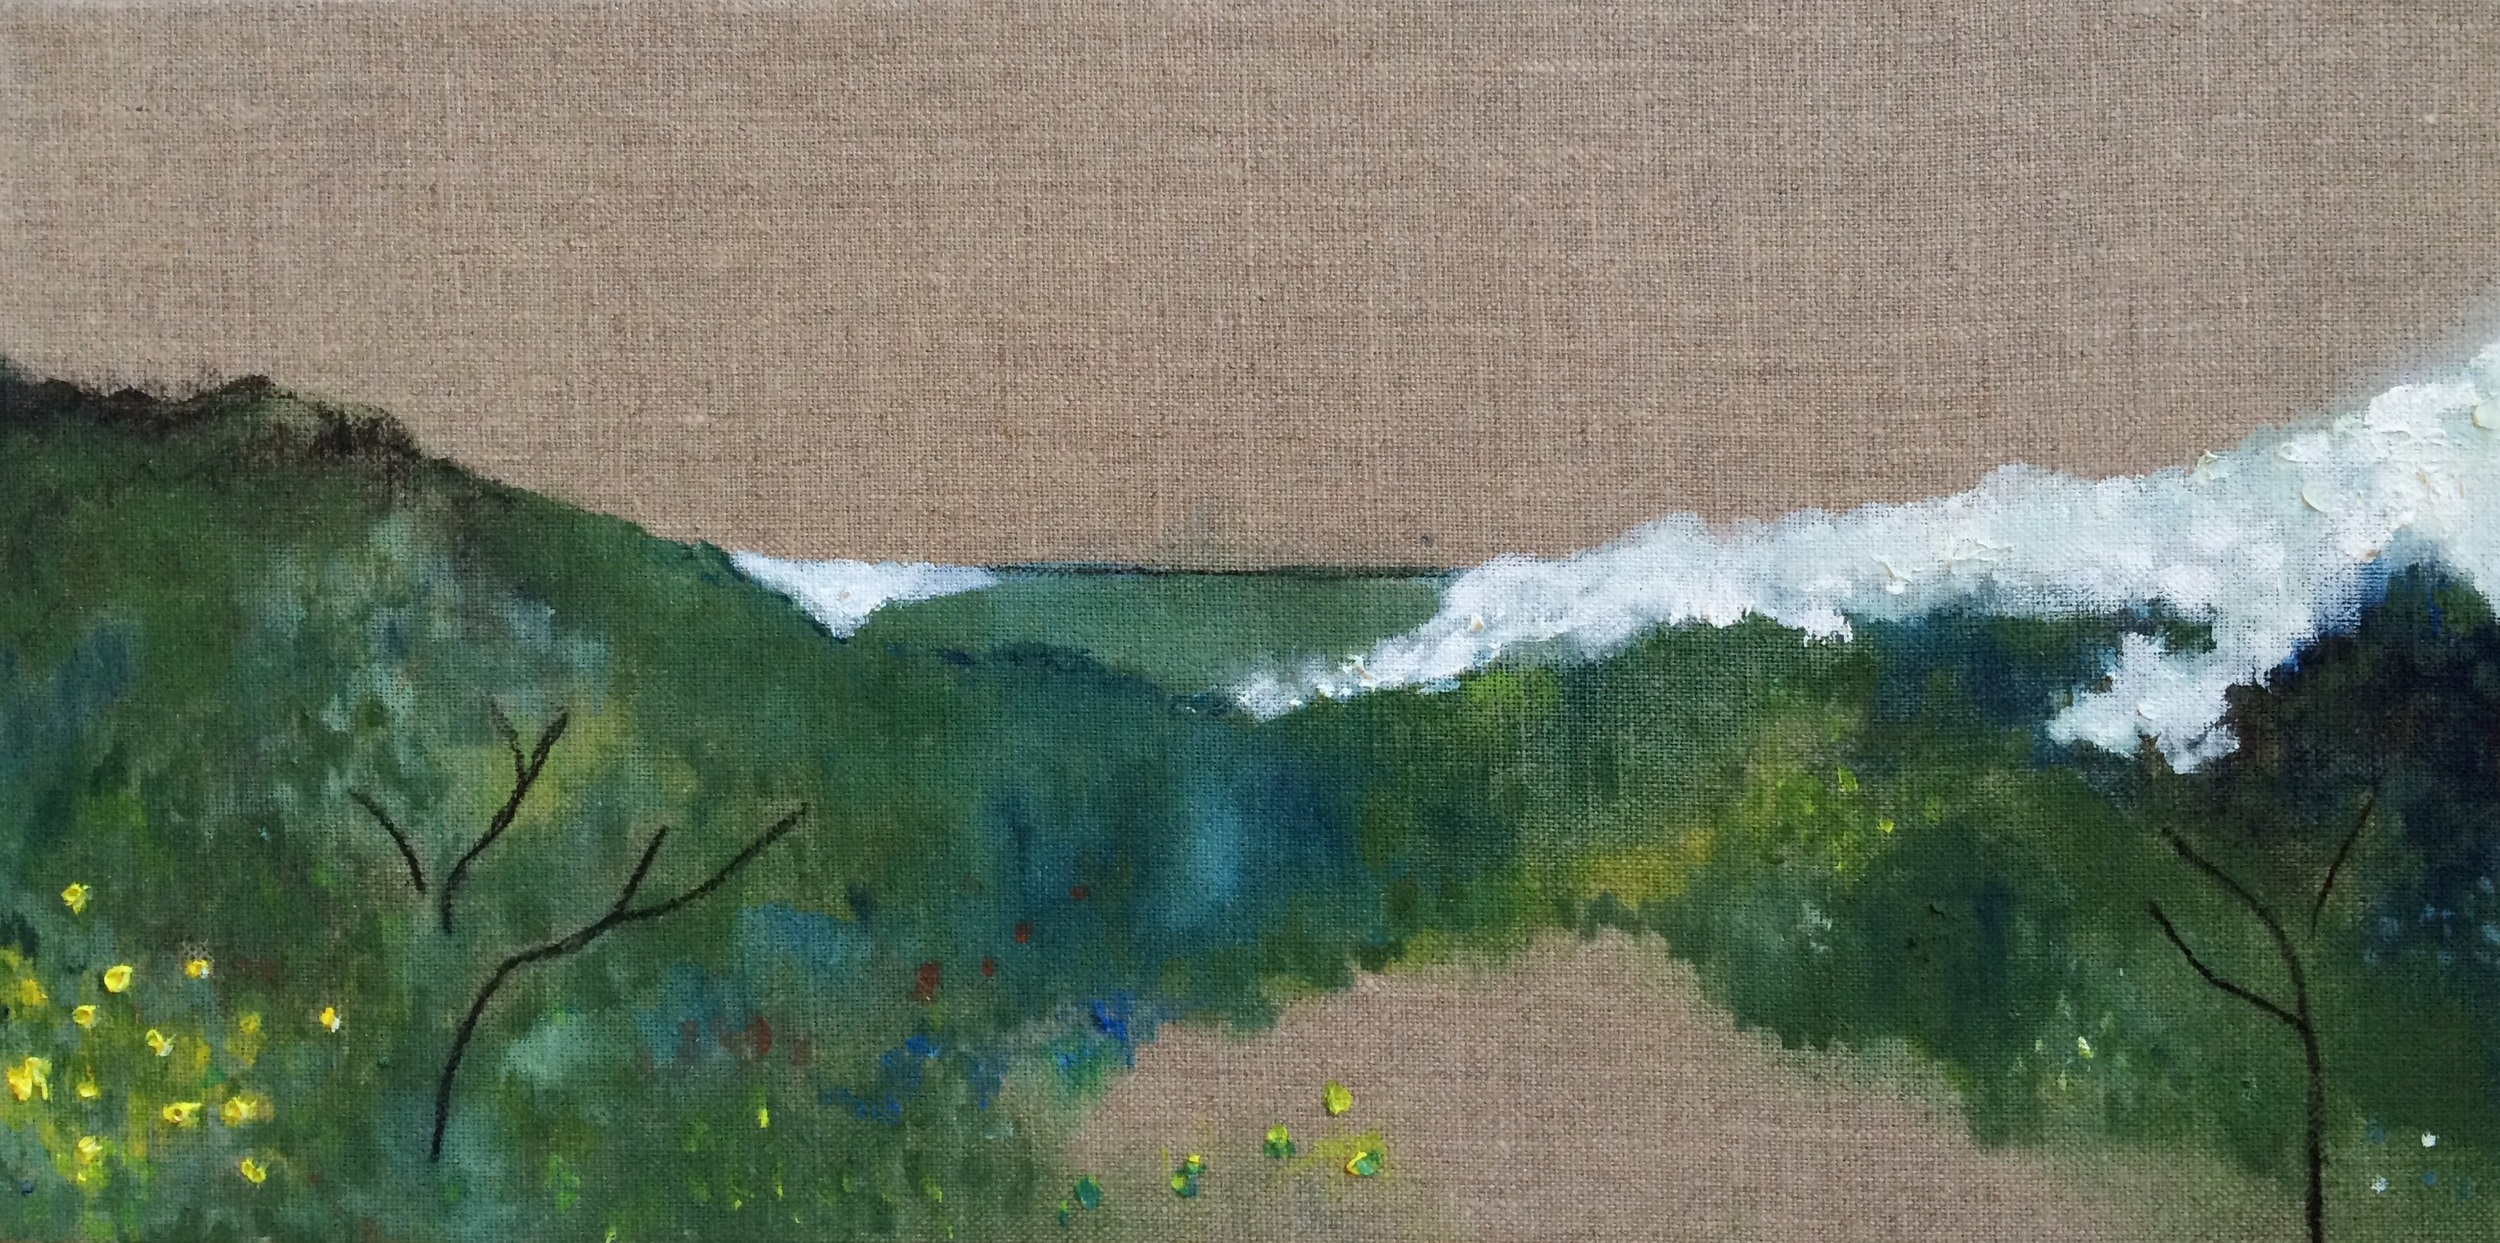 Blue Landscape I, oil paint and charcoal on linen, 20cm x 40cm